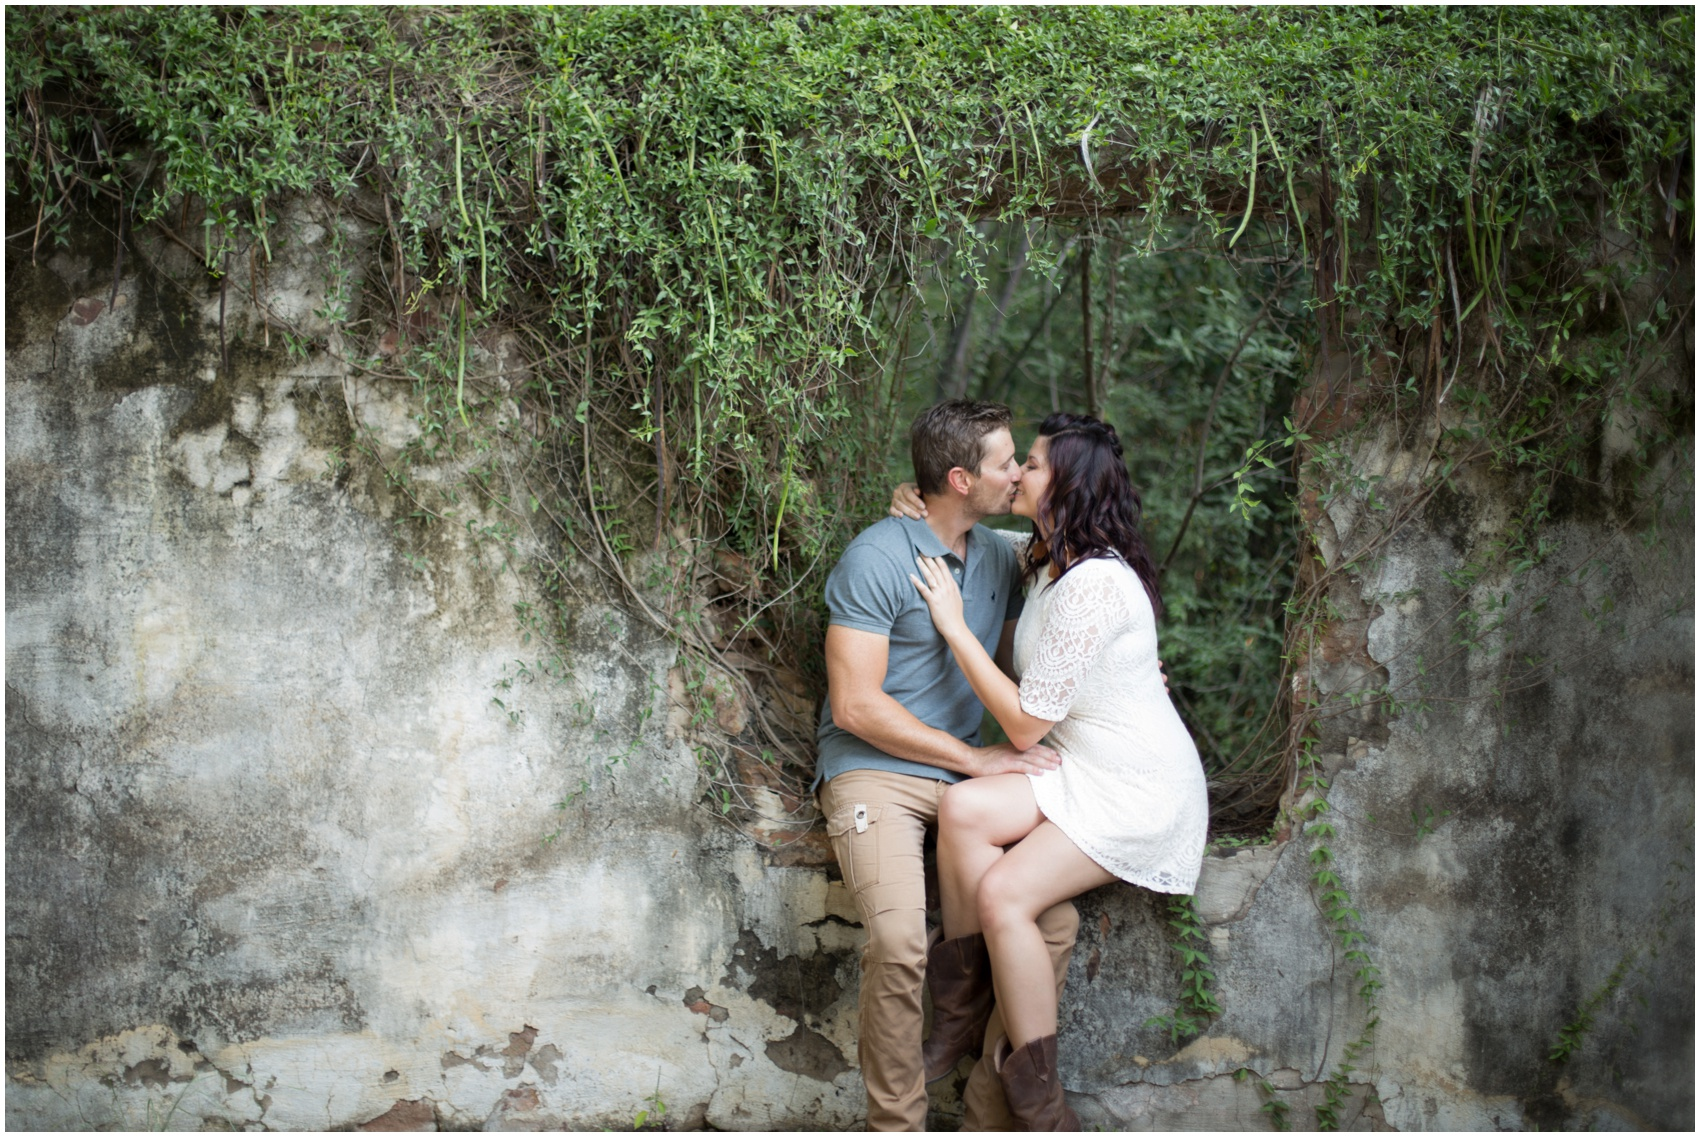 rosemary_hill_engagement_shoot_stephanie_and_jannie_03